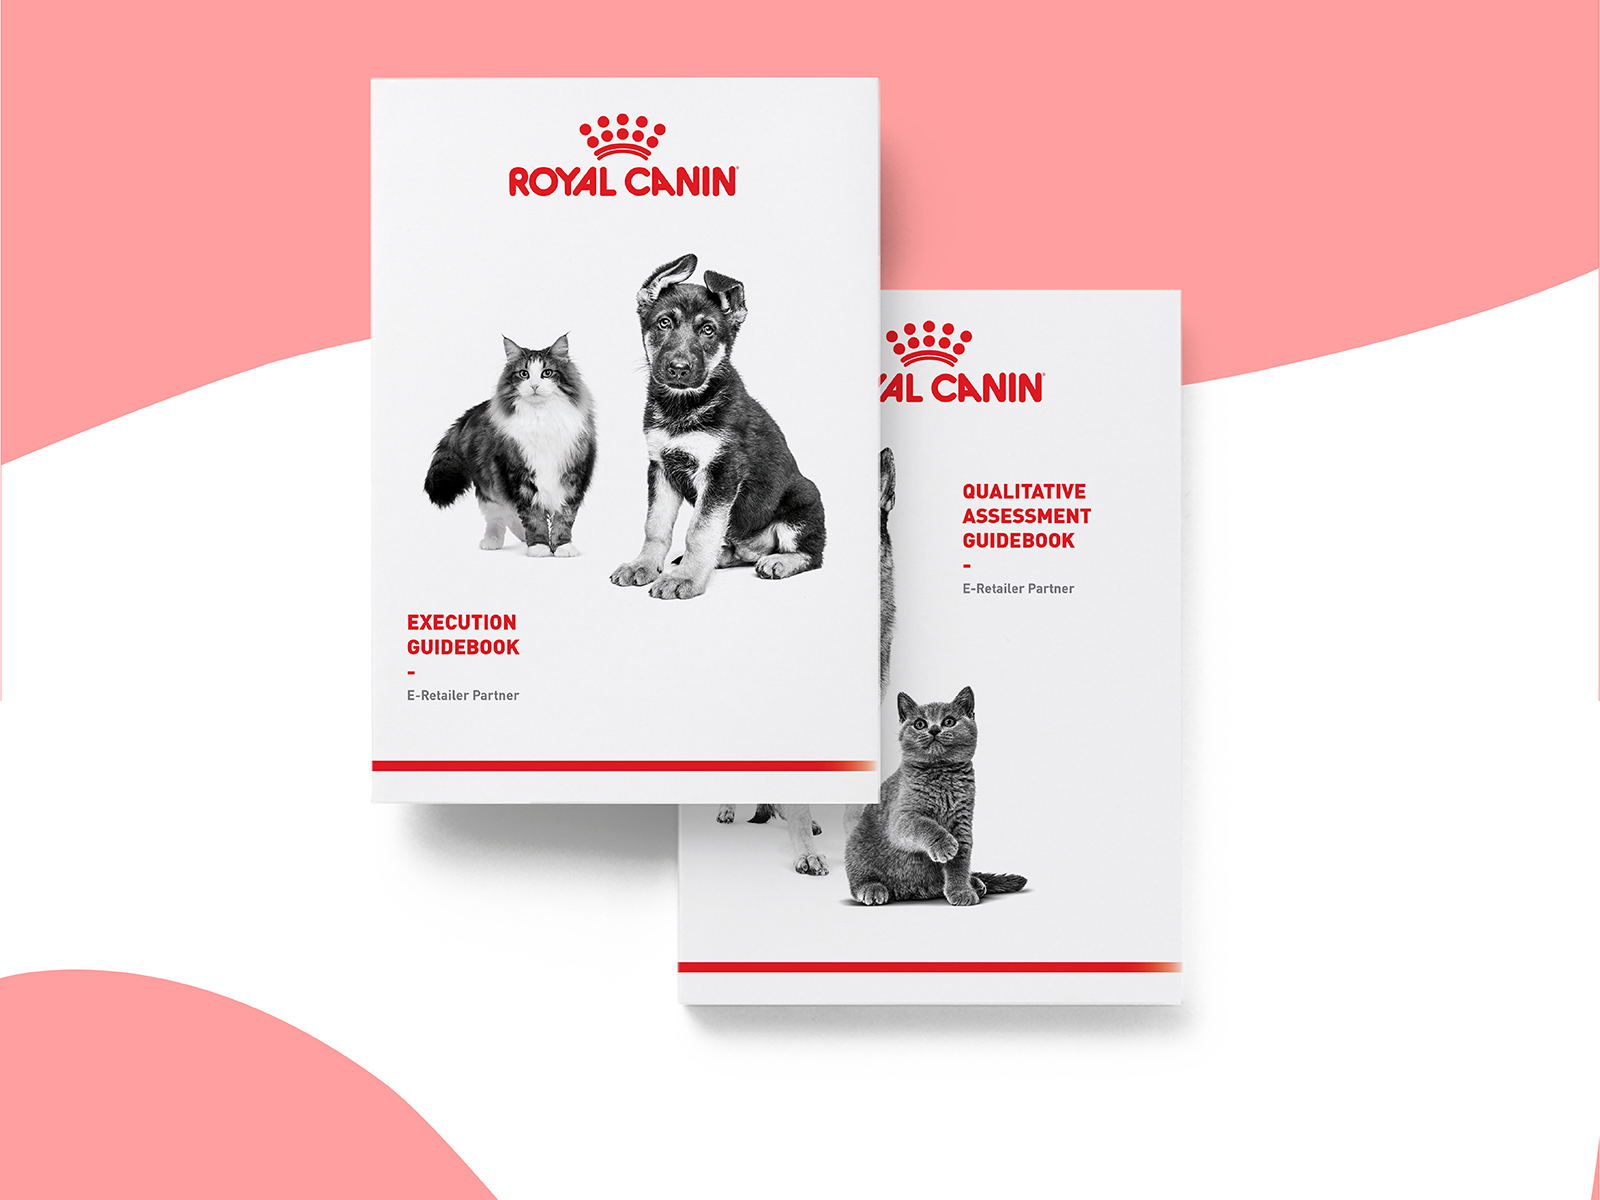 Royal Canin digital CI extension booklet cover design according to their other brand guide designs